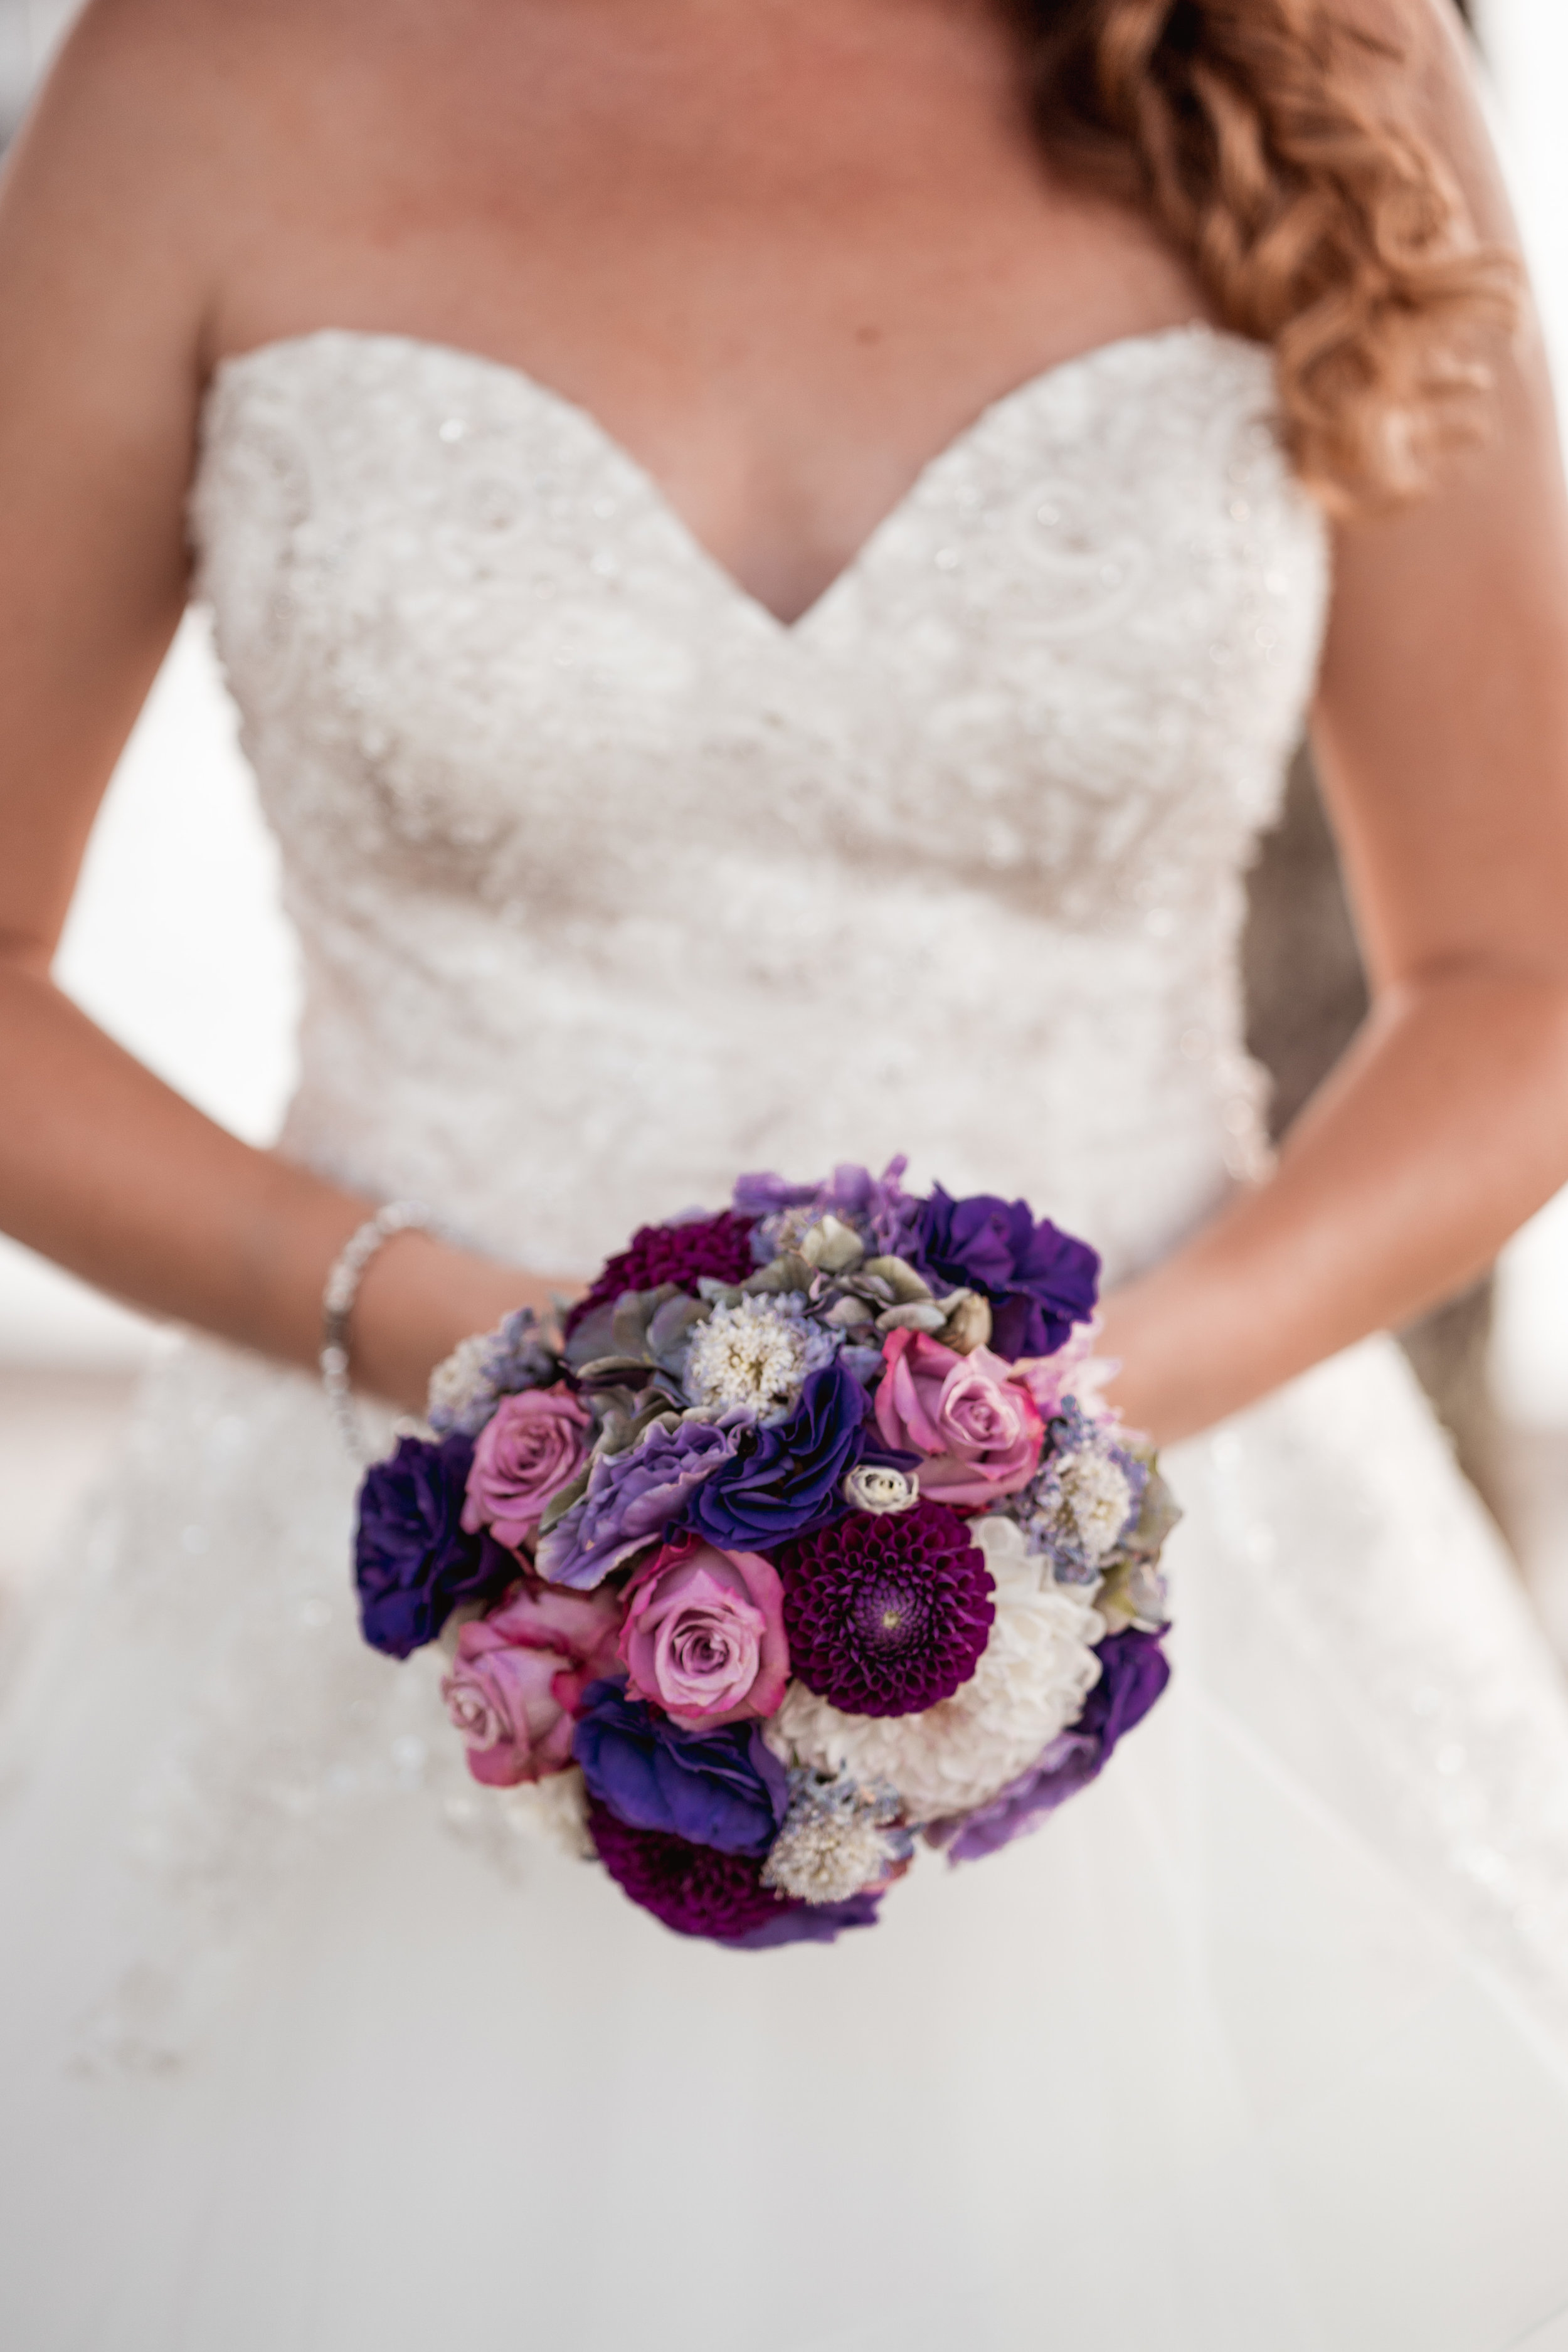 Wedding Packages - Custom Packages available upon request